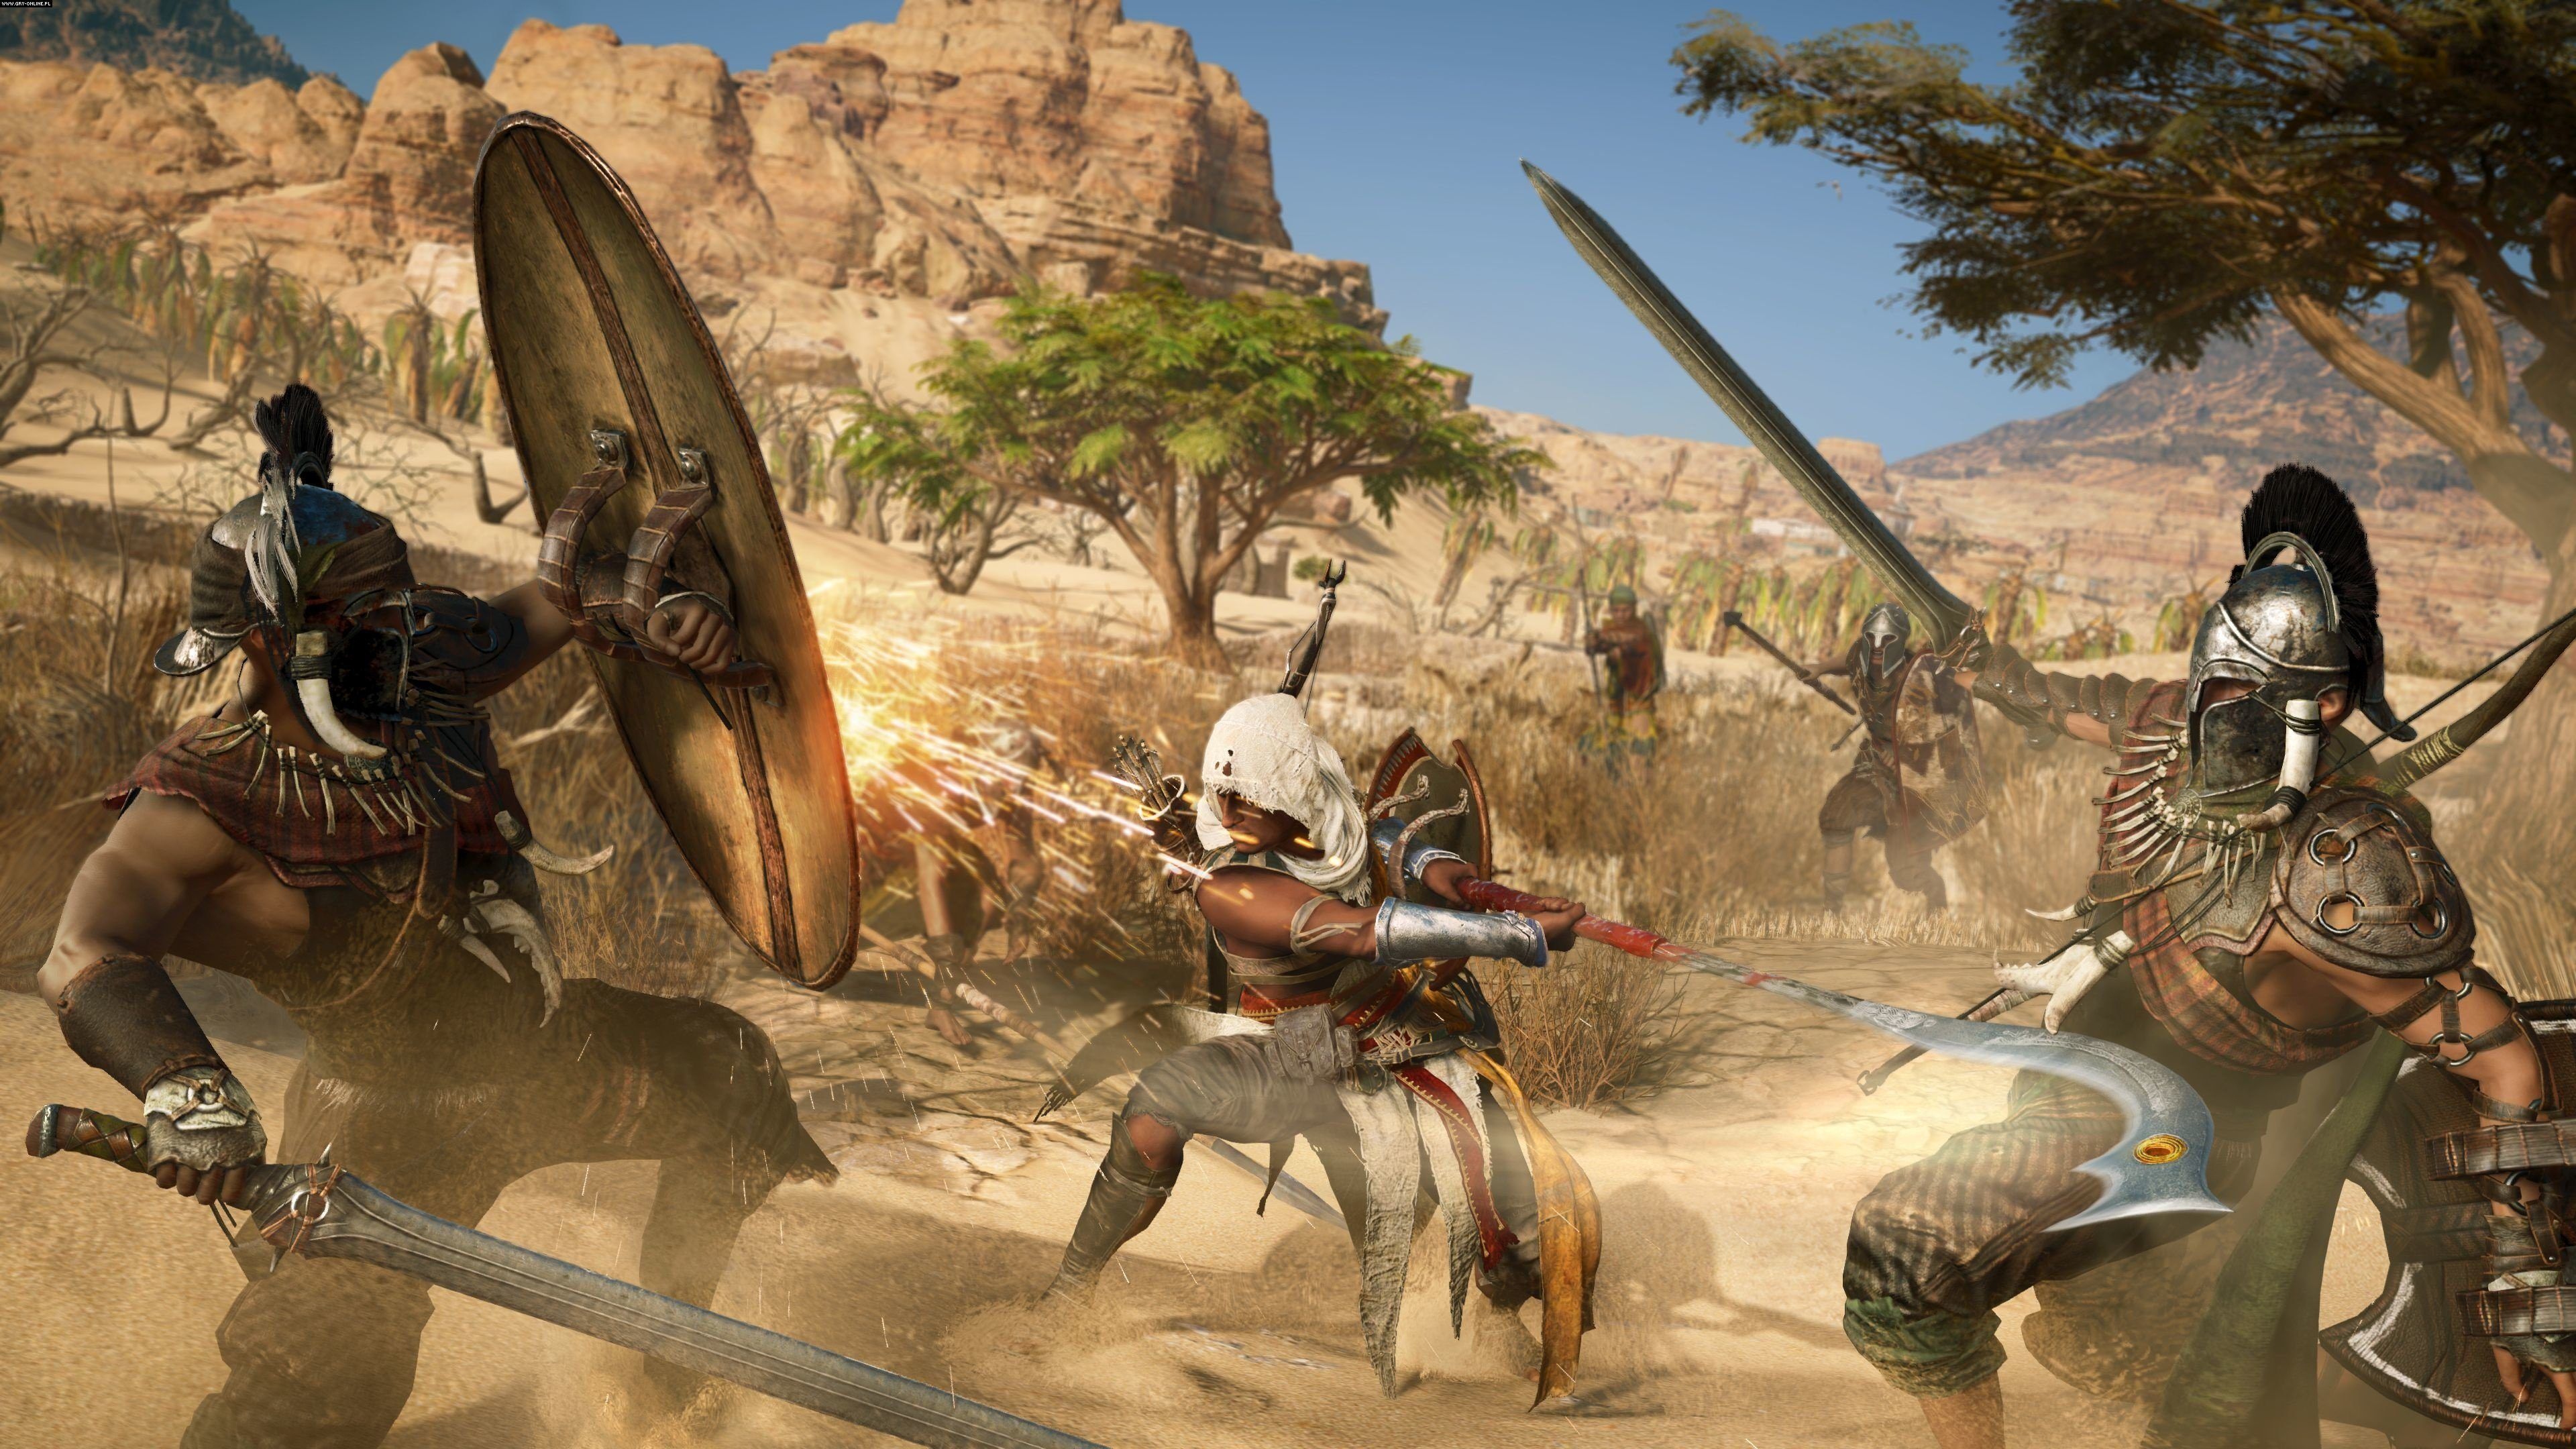 Assassin's Creed Origins PC, PS4, XONE Games Image 14/24, Ubisoft